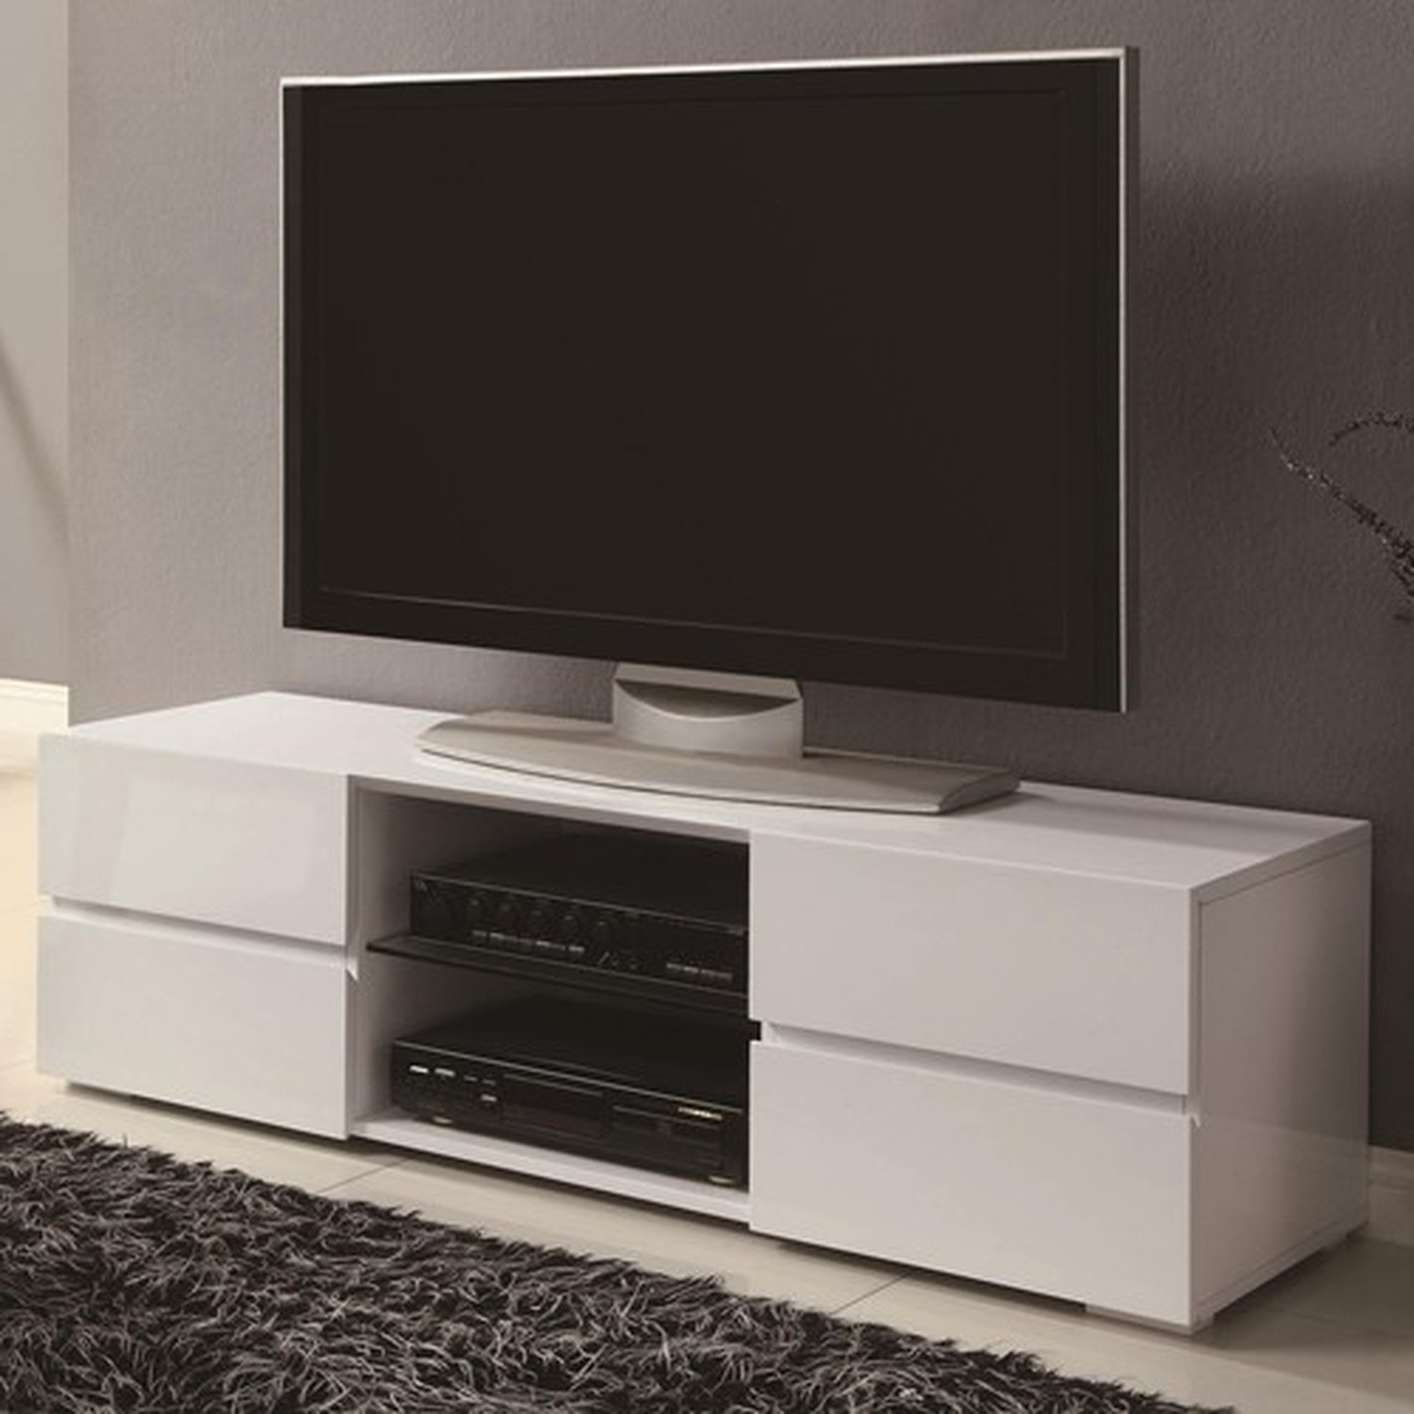 White Wood Tv Stand – Steal A Sofa Furniture Outlet Los Angeles Ca With Glossy White Tv Stands (View 11 of 15)